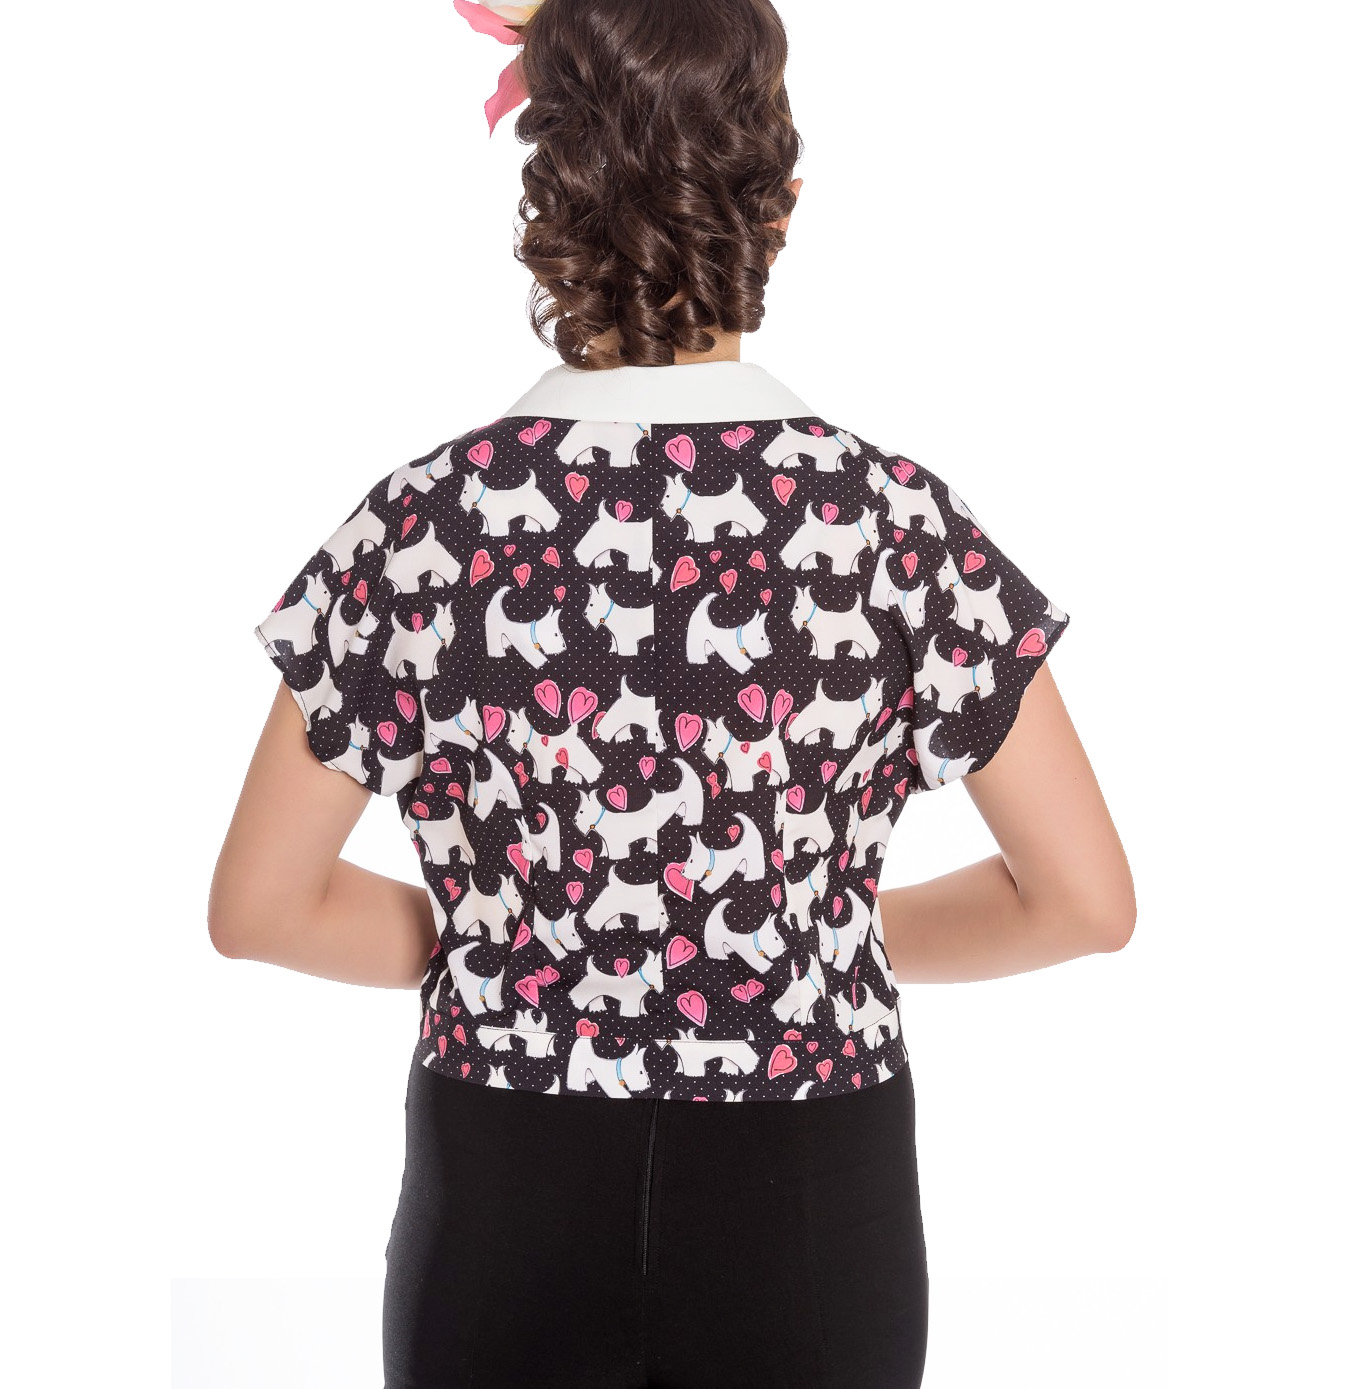 Hell-Bunny-50s-Retro-Top-Scottie-Dog-Heart-AGGY-Cropped-Blouse-Shirt-All-Sizes thumbnail 5